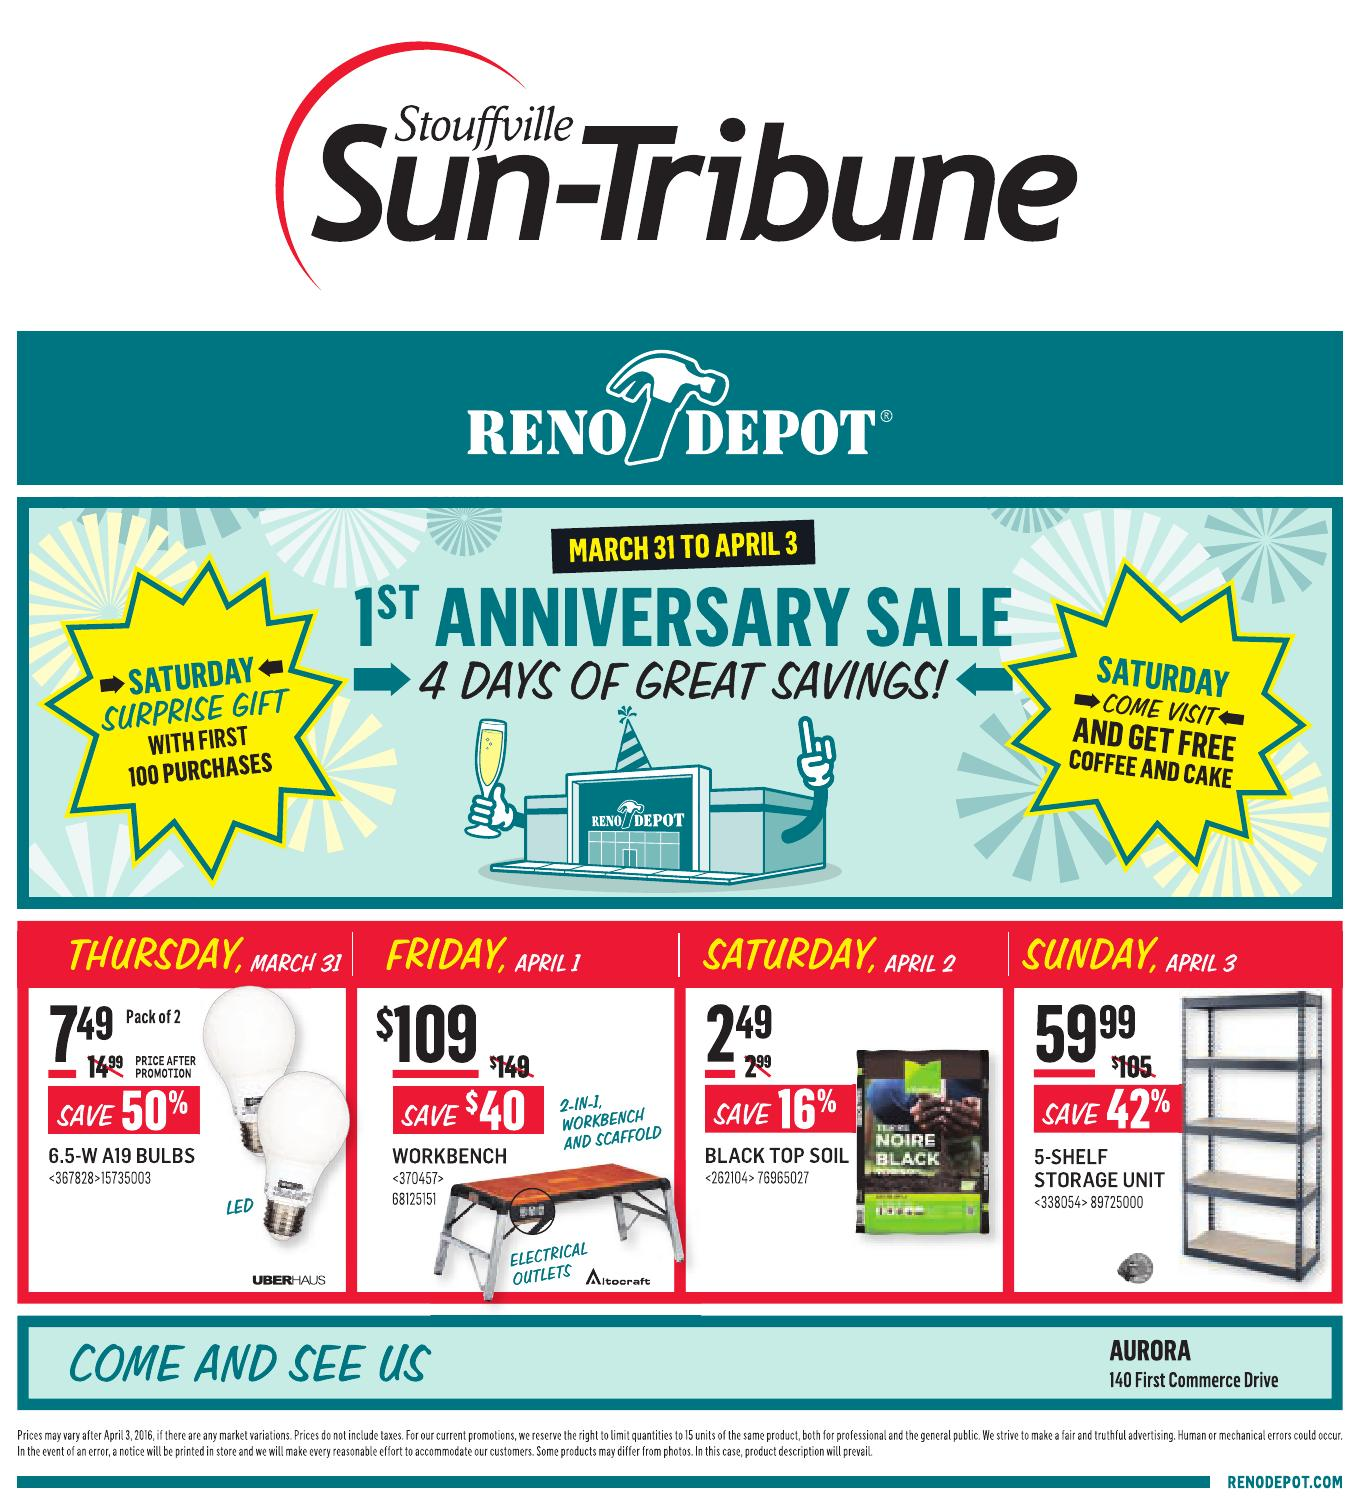 Stoufville Sun, March 31 2016 by Stouffville Sun-Tribune - issuu